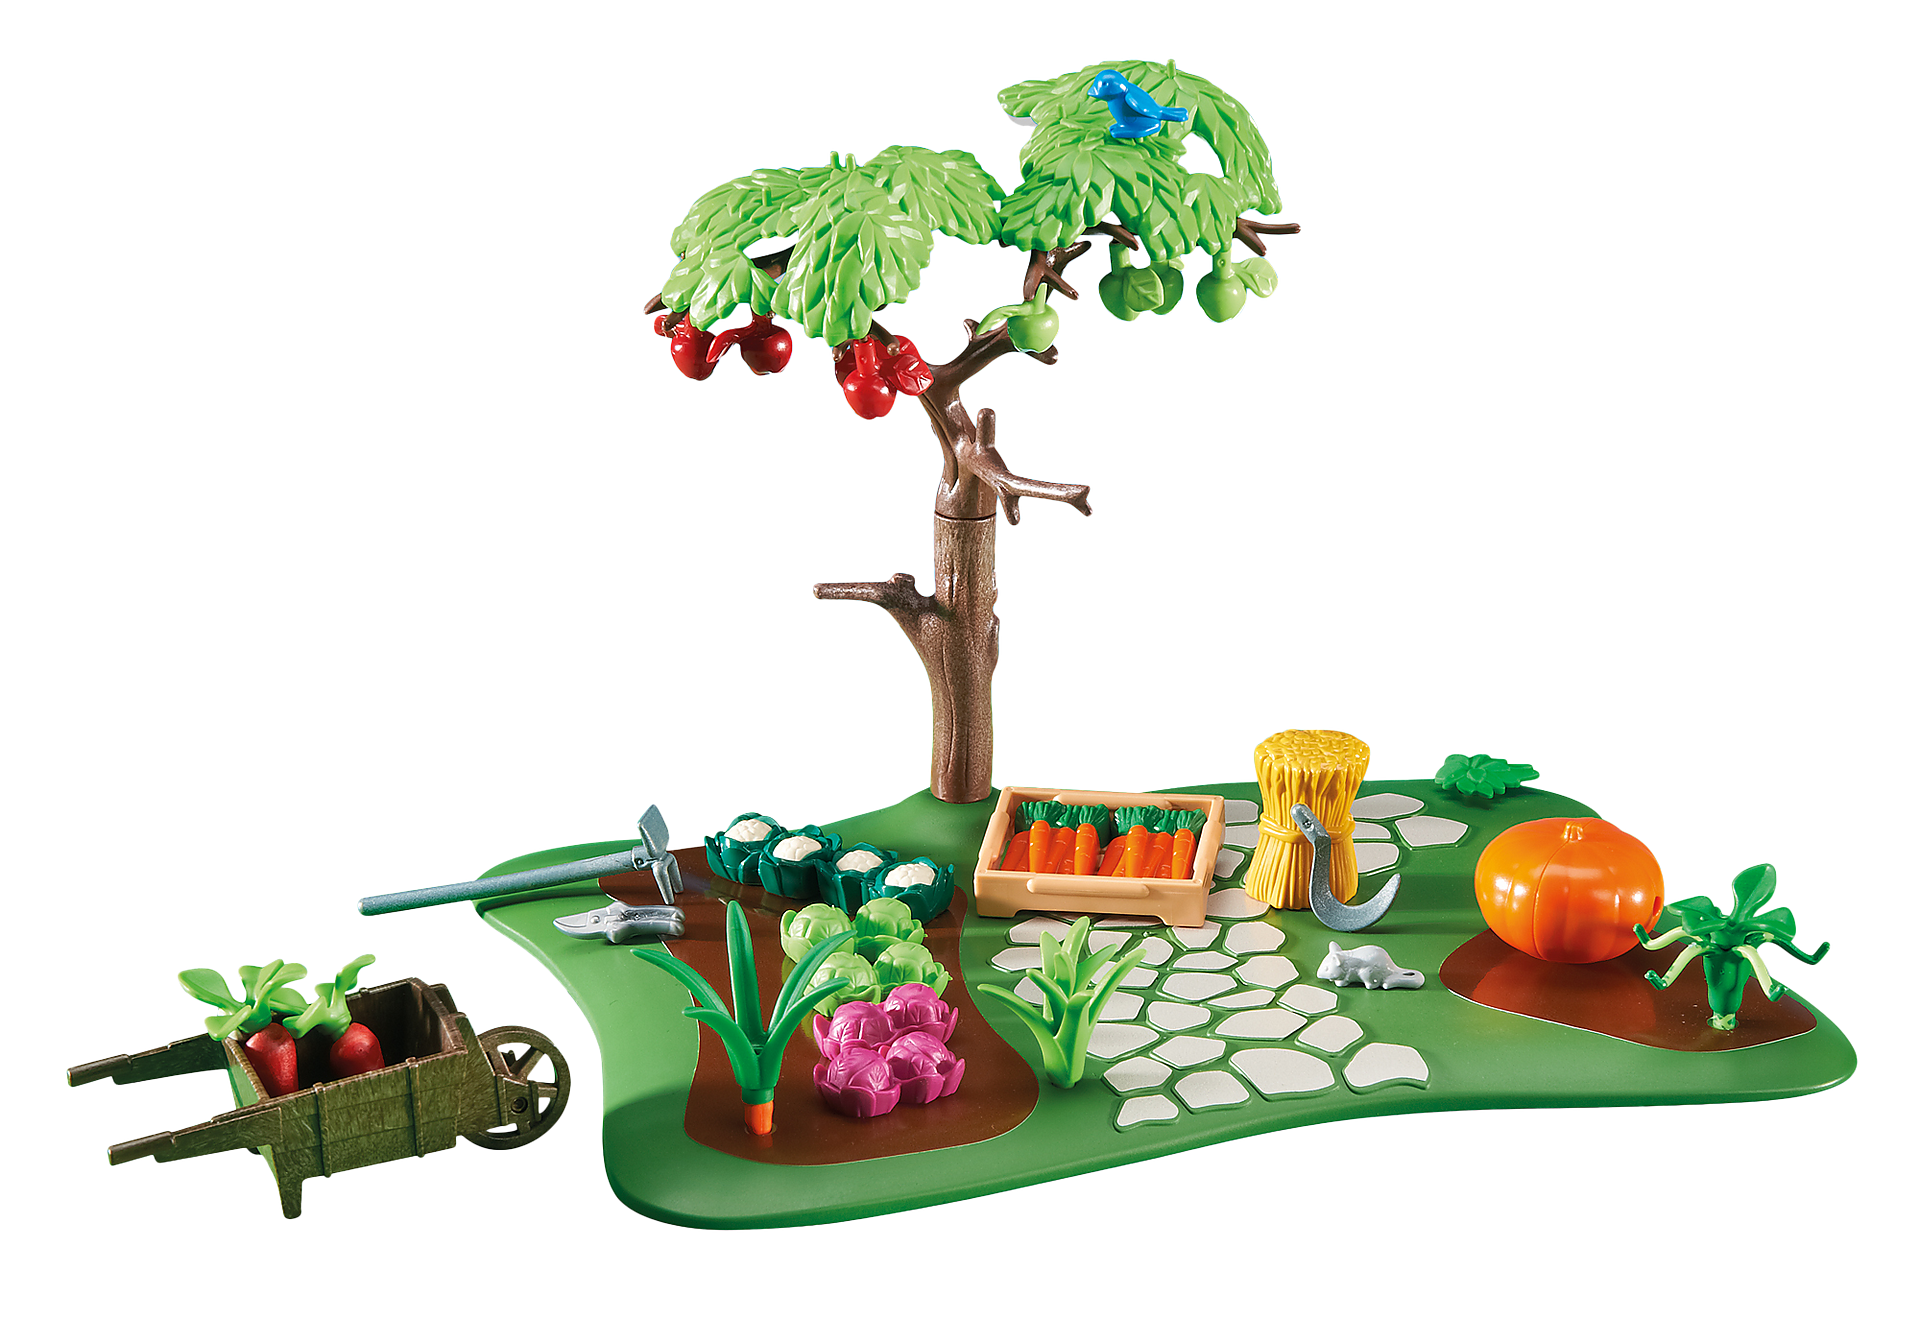 http://media.playmobil.com/i/playmobil/6417_product_detail/Potager avec fruits et légumes